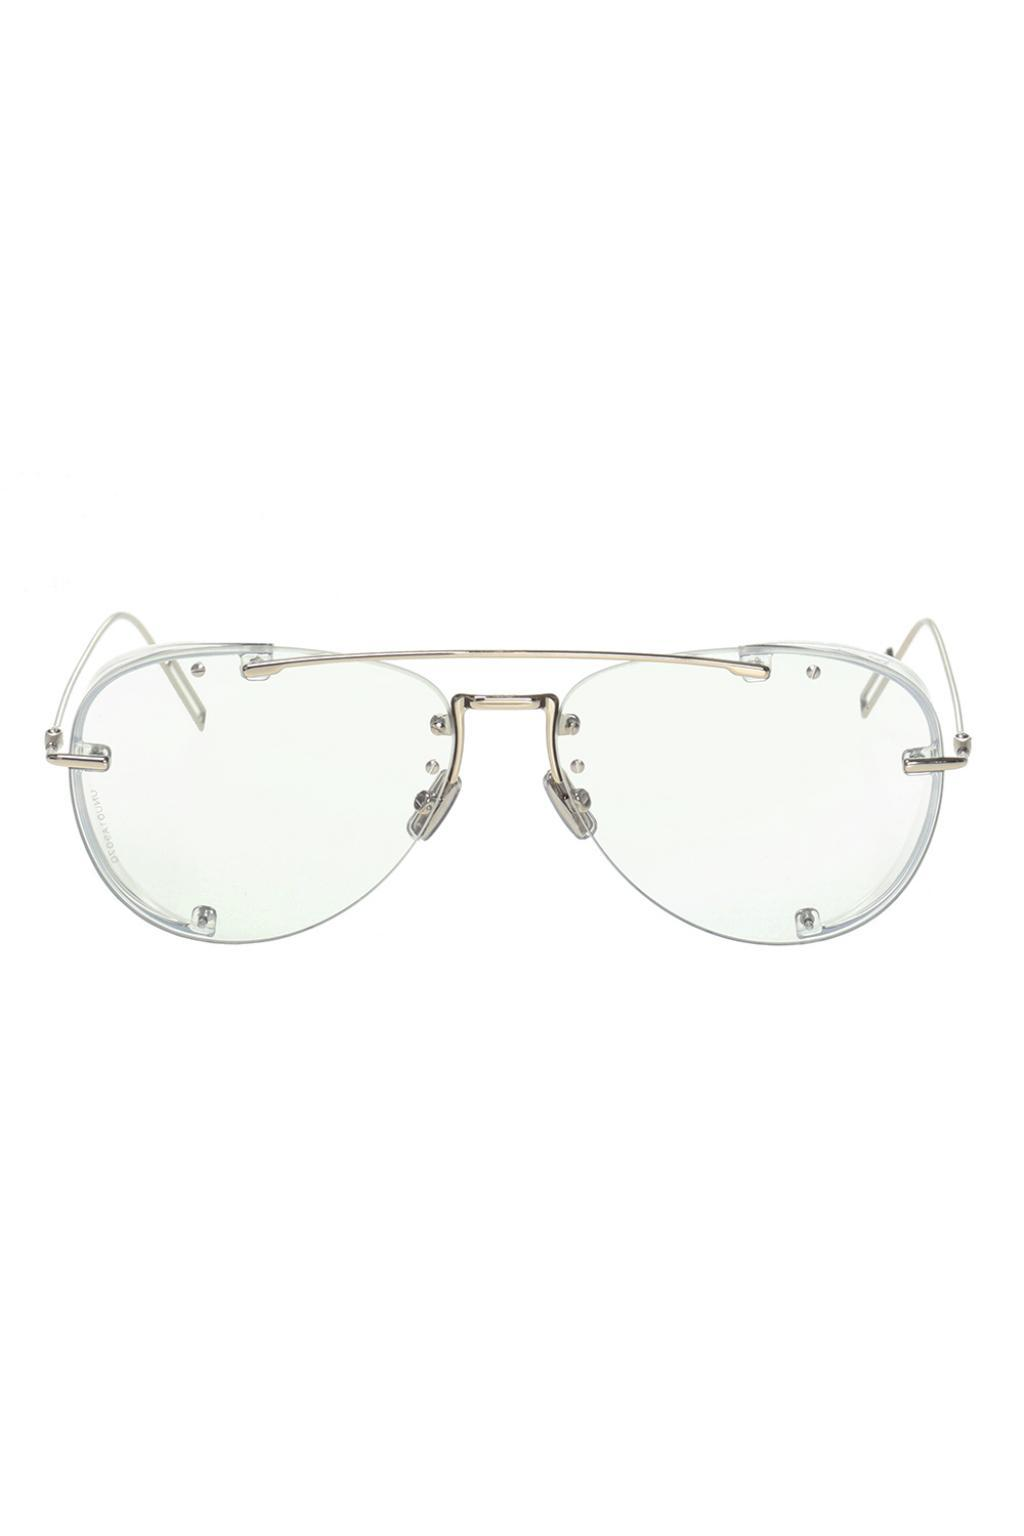 9d0ac8dafd79 Dior 'chroma1' Optical Glasses With Logo in Metallic for Men - Lyst